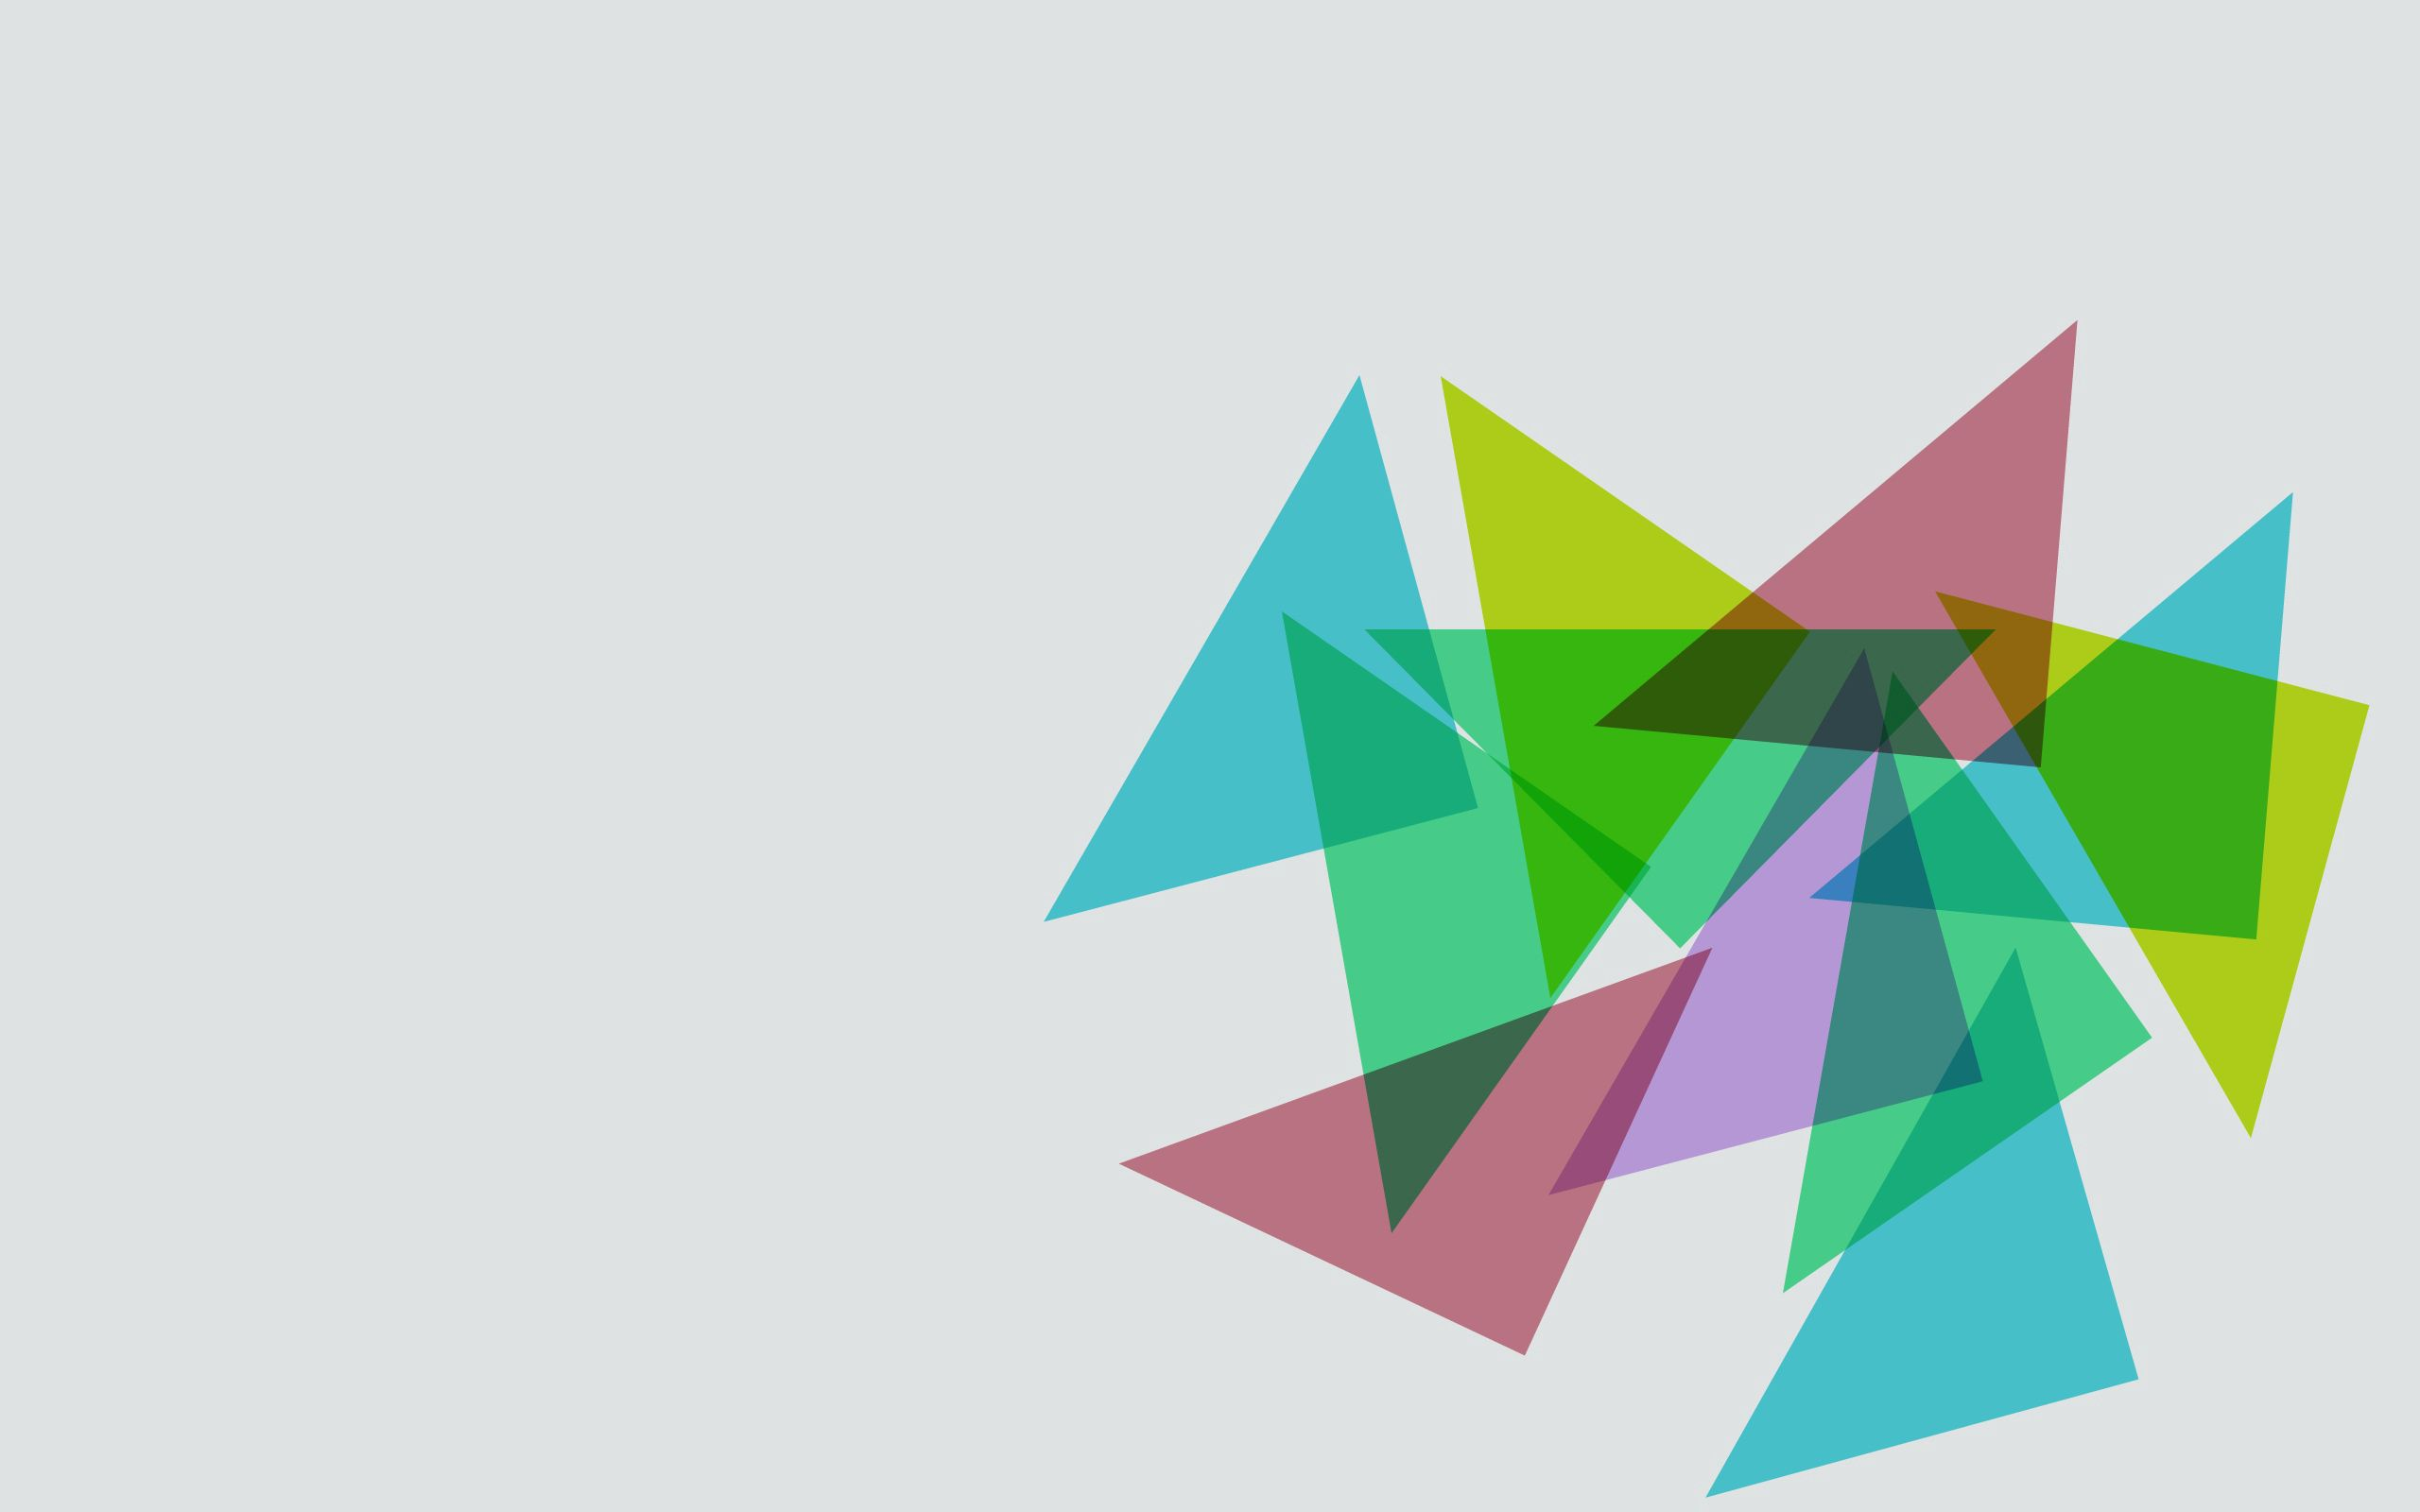 92972 download wallpaper Abstract, Triangles, Background, Form screensavers and pictures for free